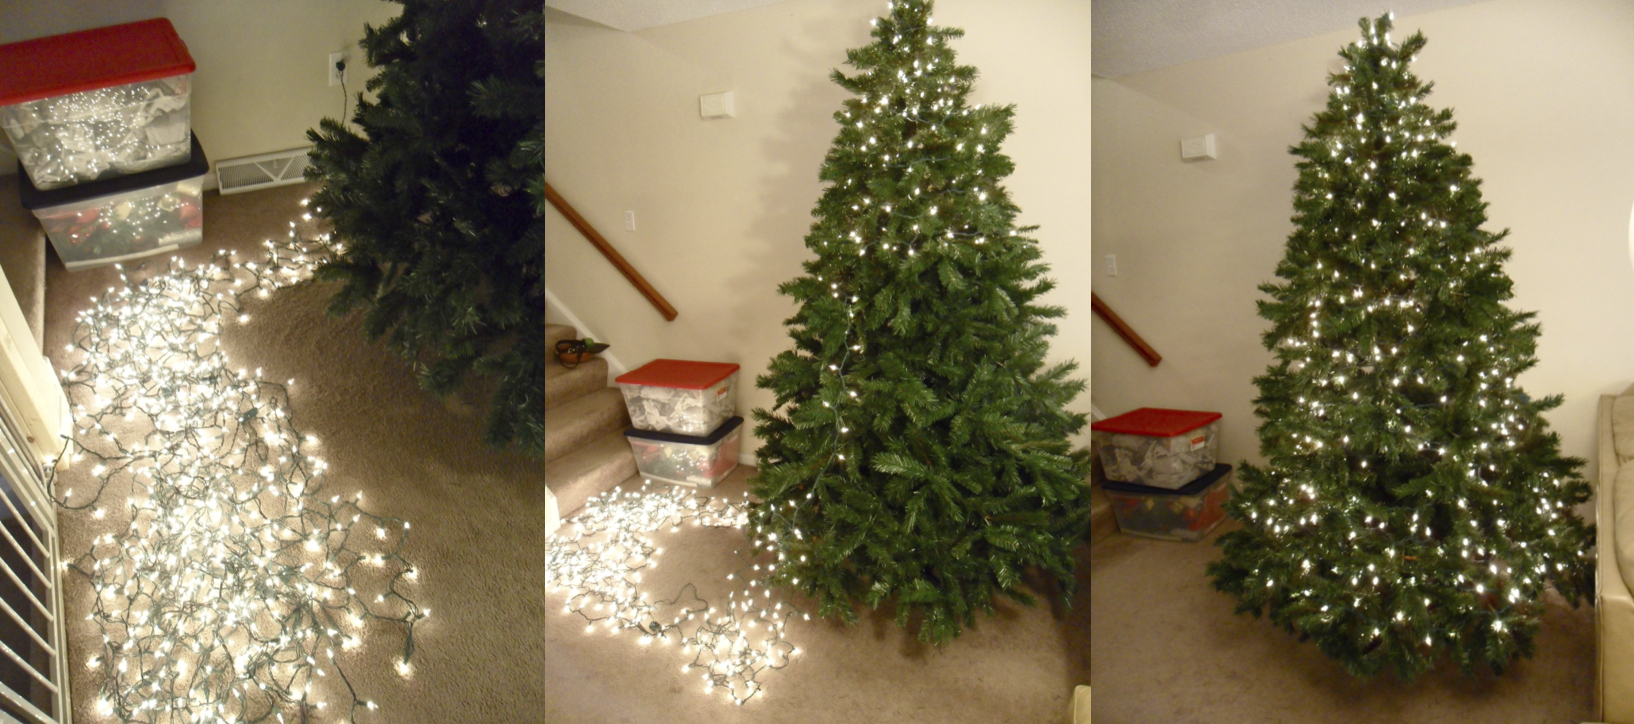 How To String Lights On A Large Christmas Tree : Tips for Decorating Your Christmas Tree making it with danielle